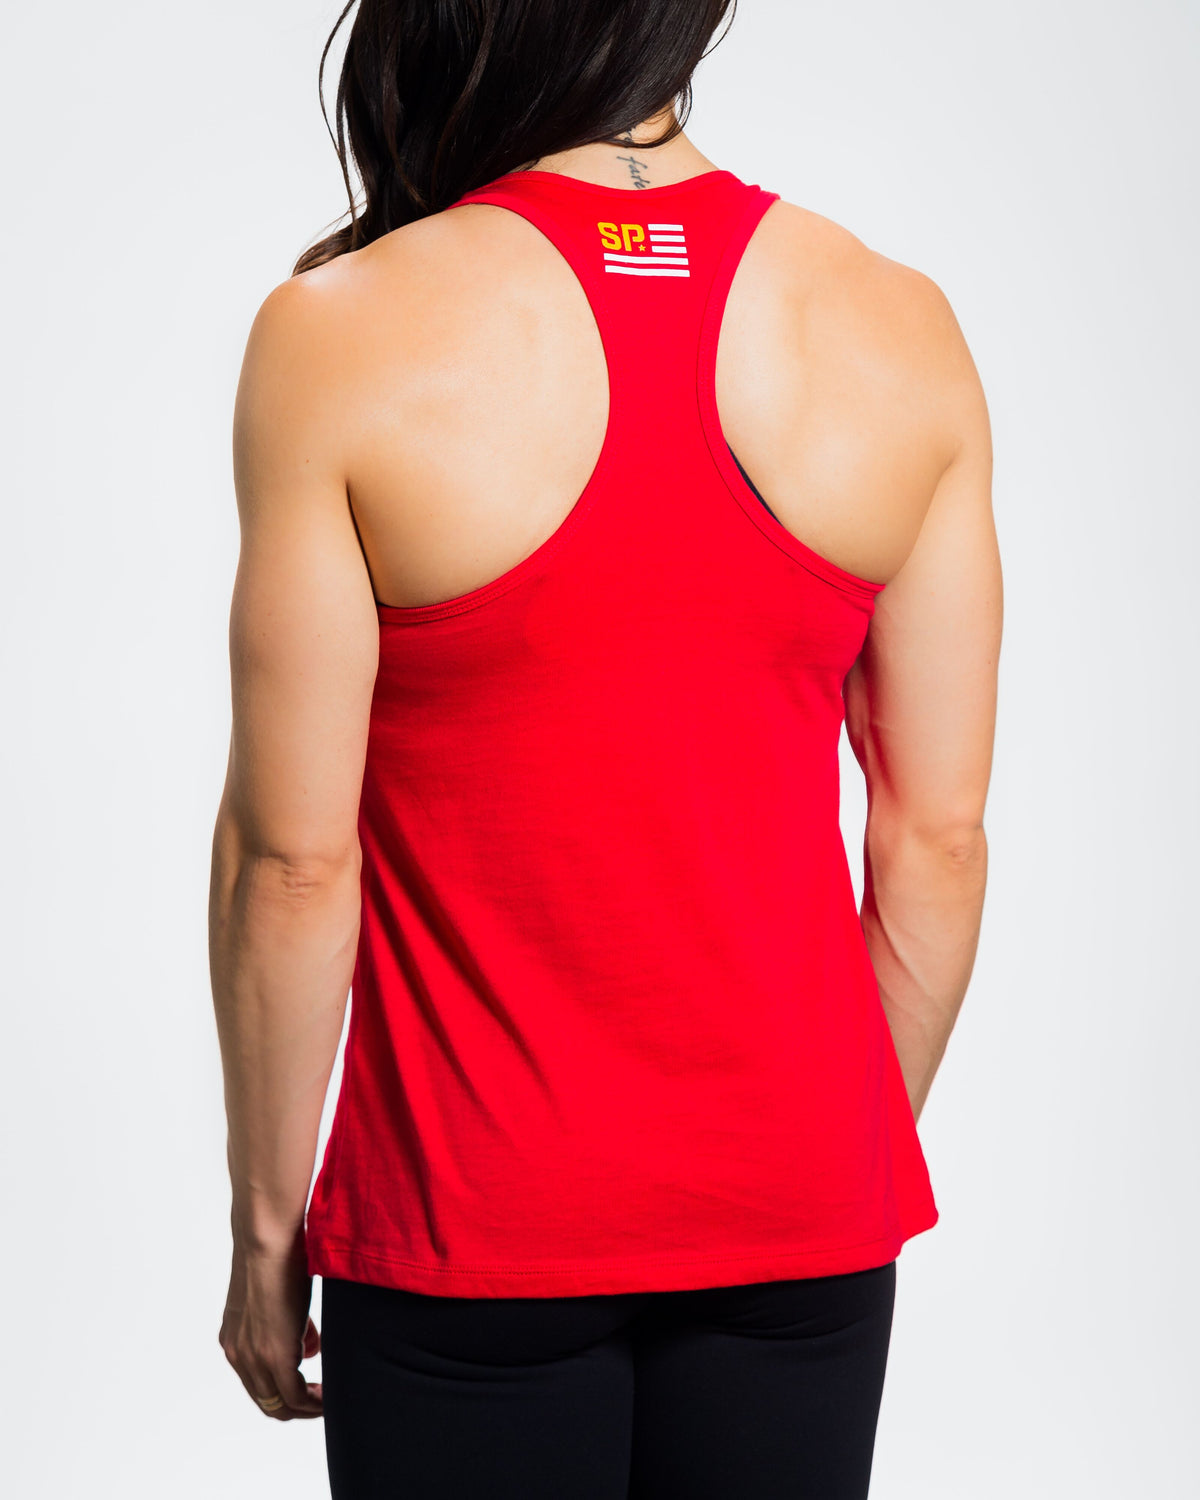 RED Veteran Tank - Women's - Street Parking